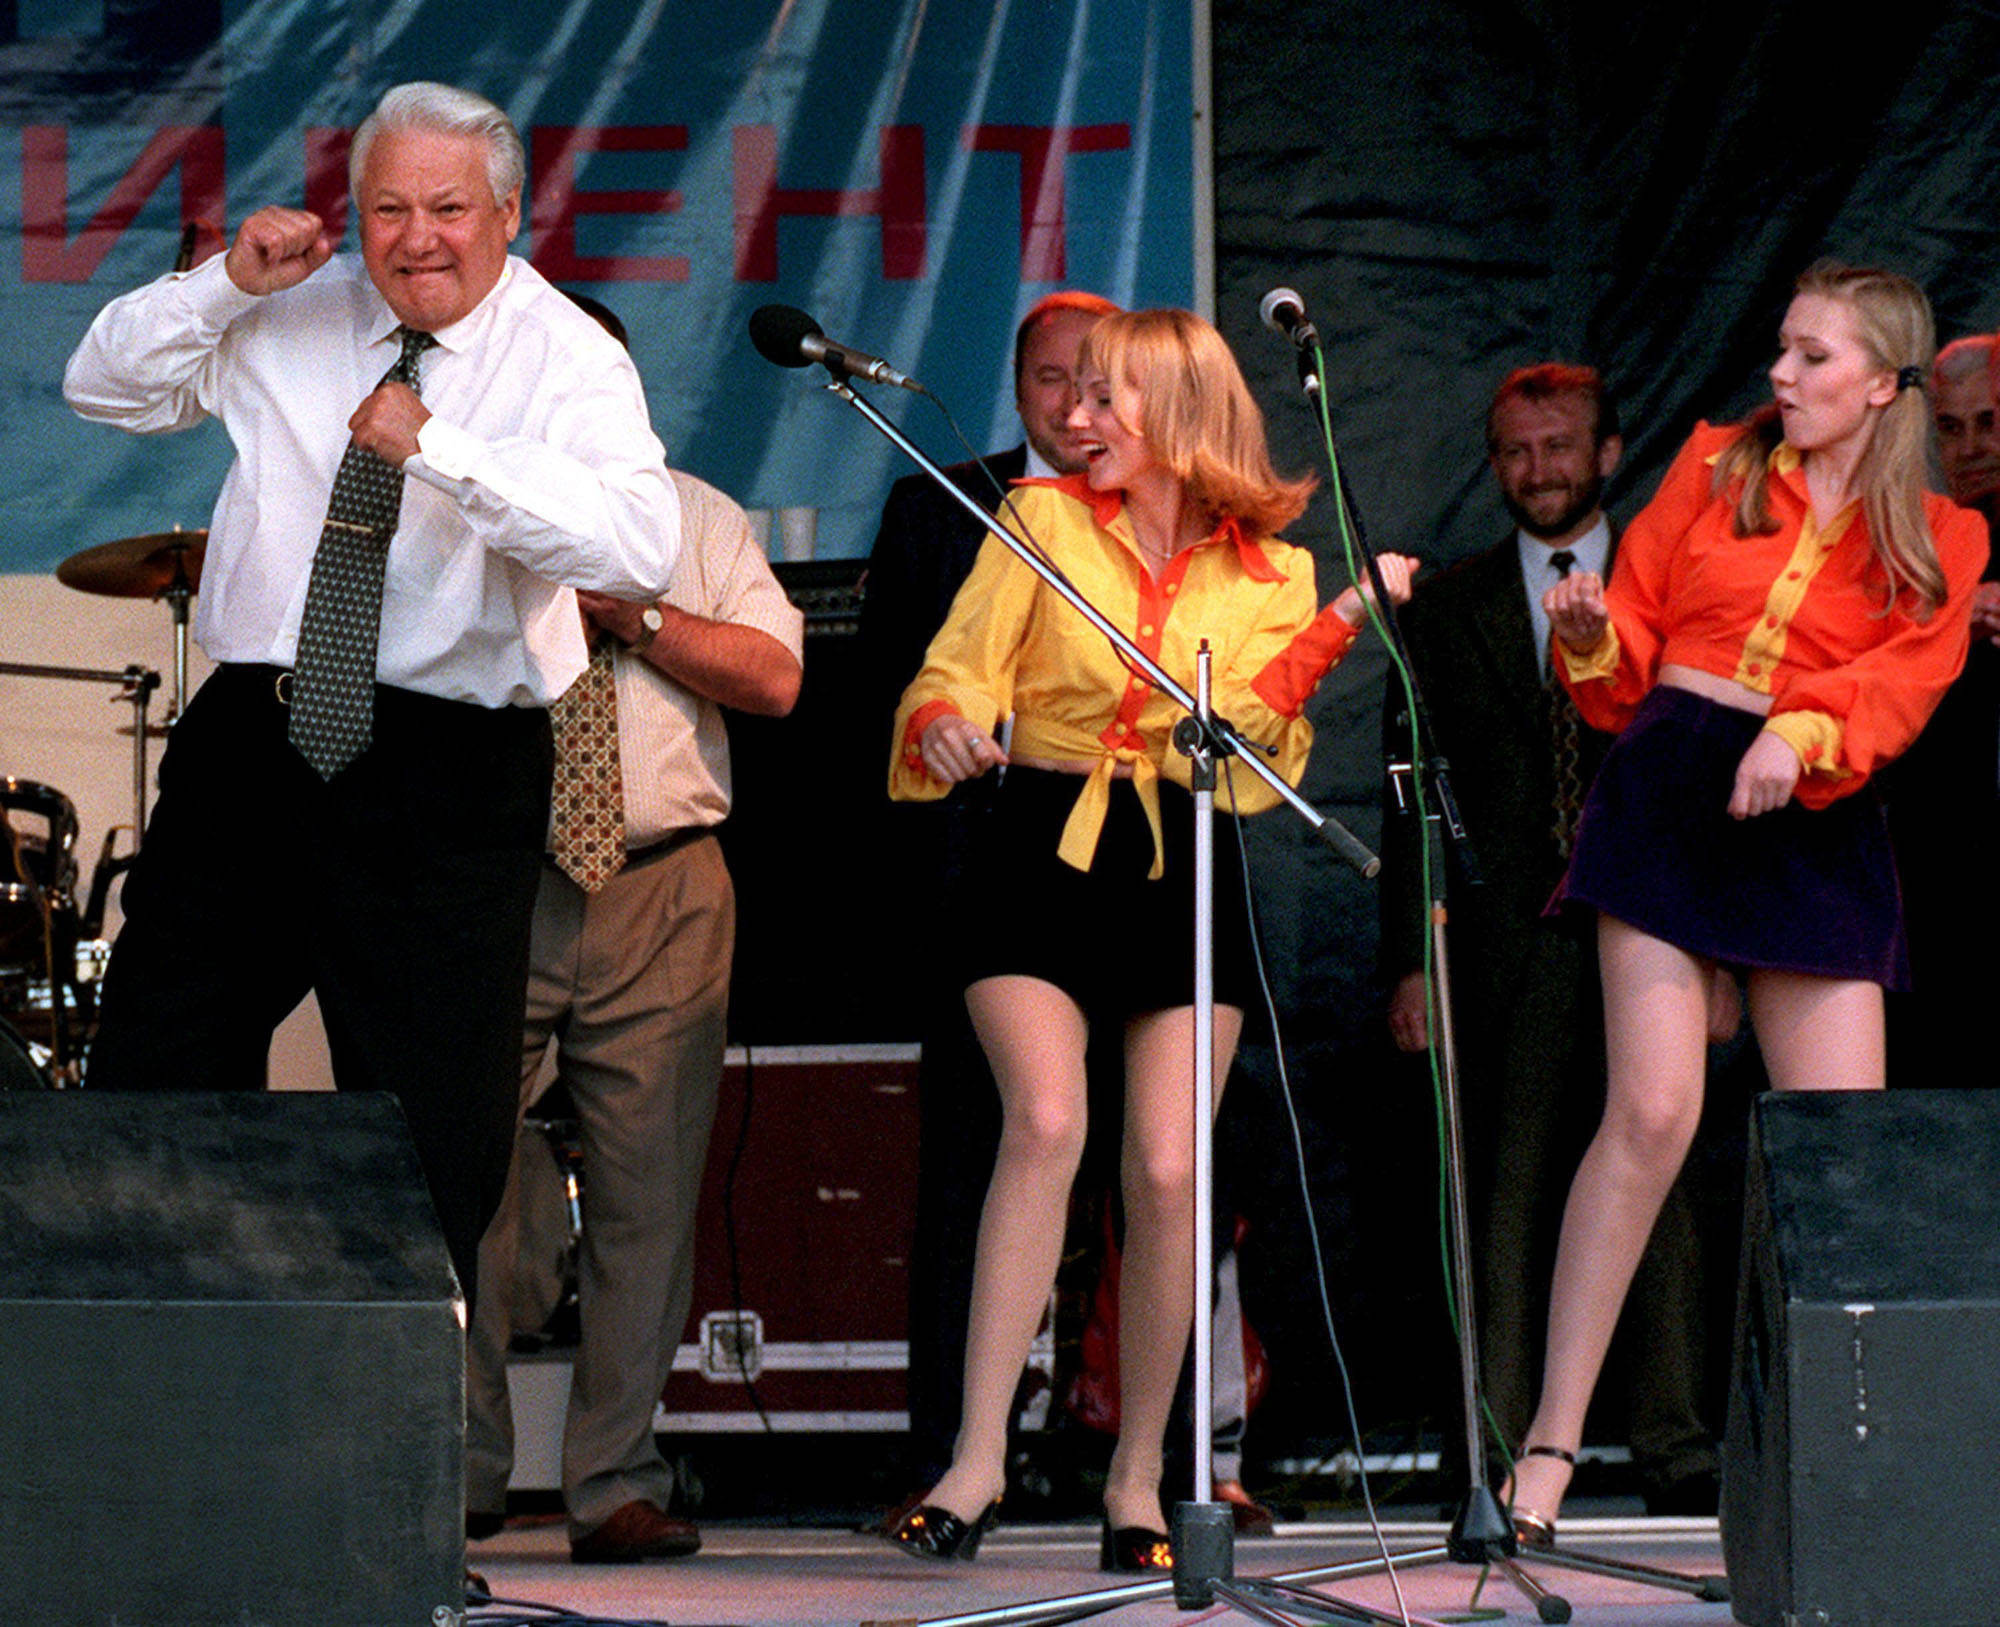 Former Russian President Boris Yeltsin probably boogied more than was necessary, but he amused at least one U.S. President and provided entertainment for all.